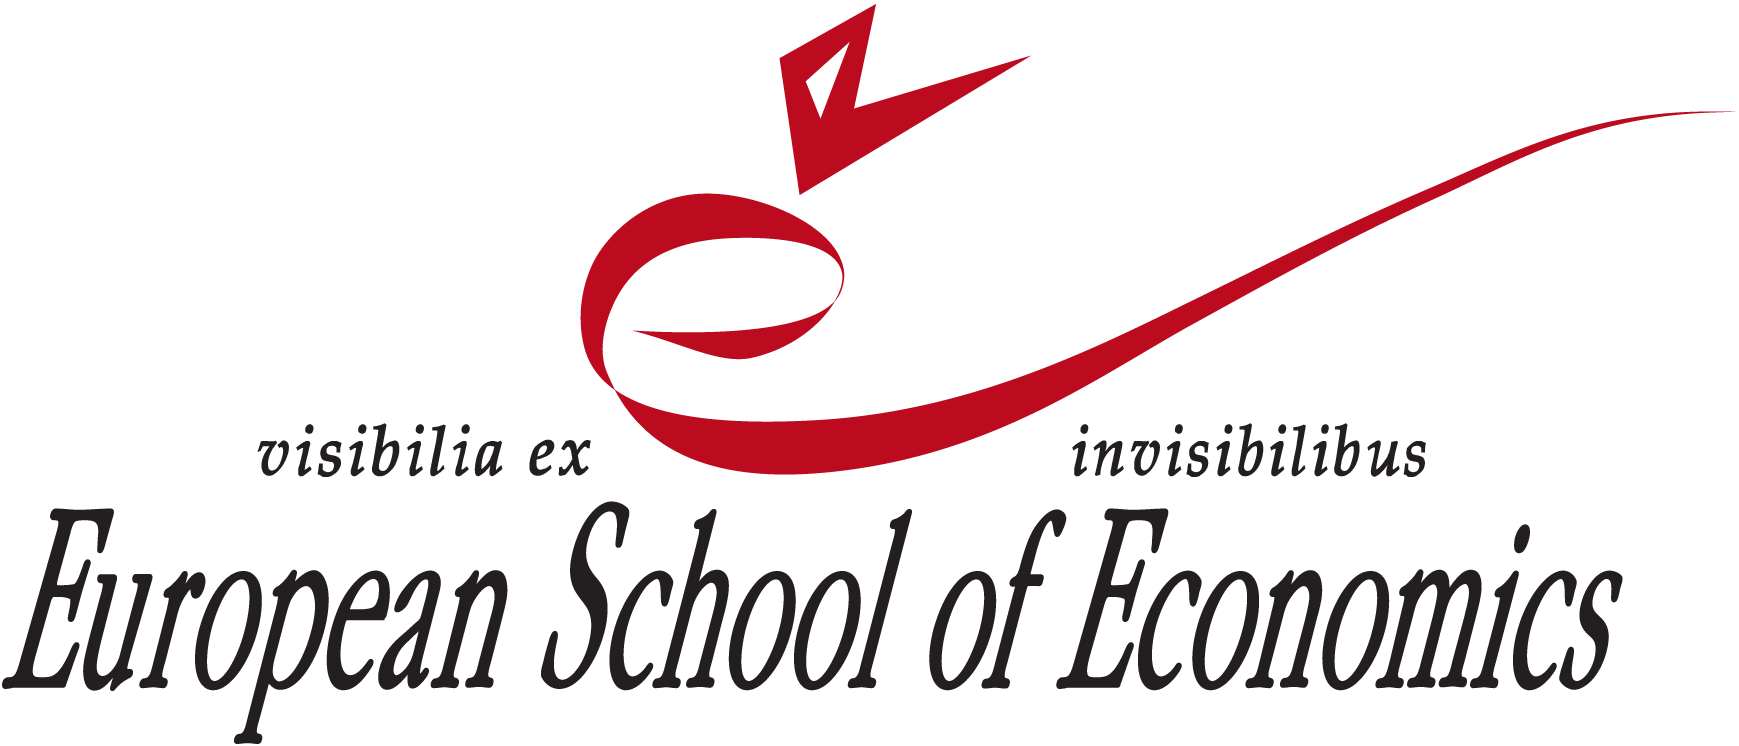 ESE Floransa ( European School of Economics ) Logo